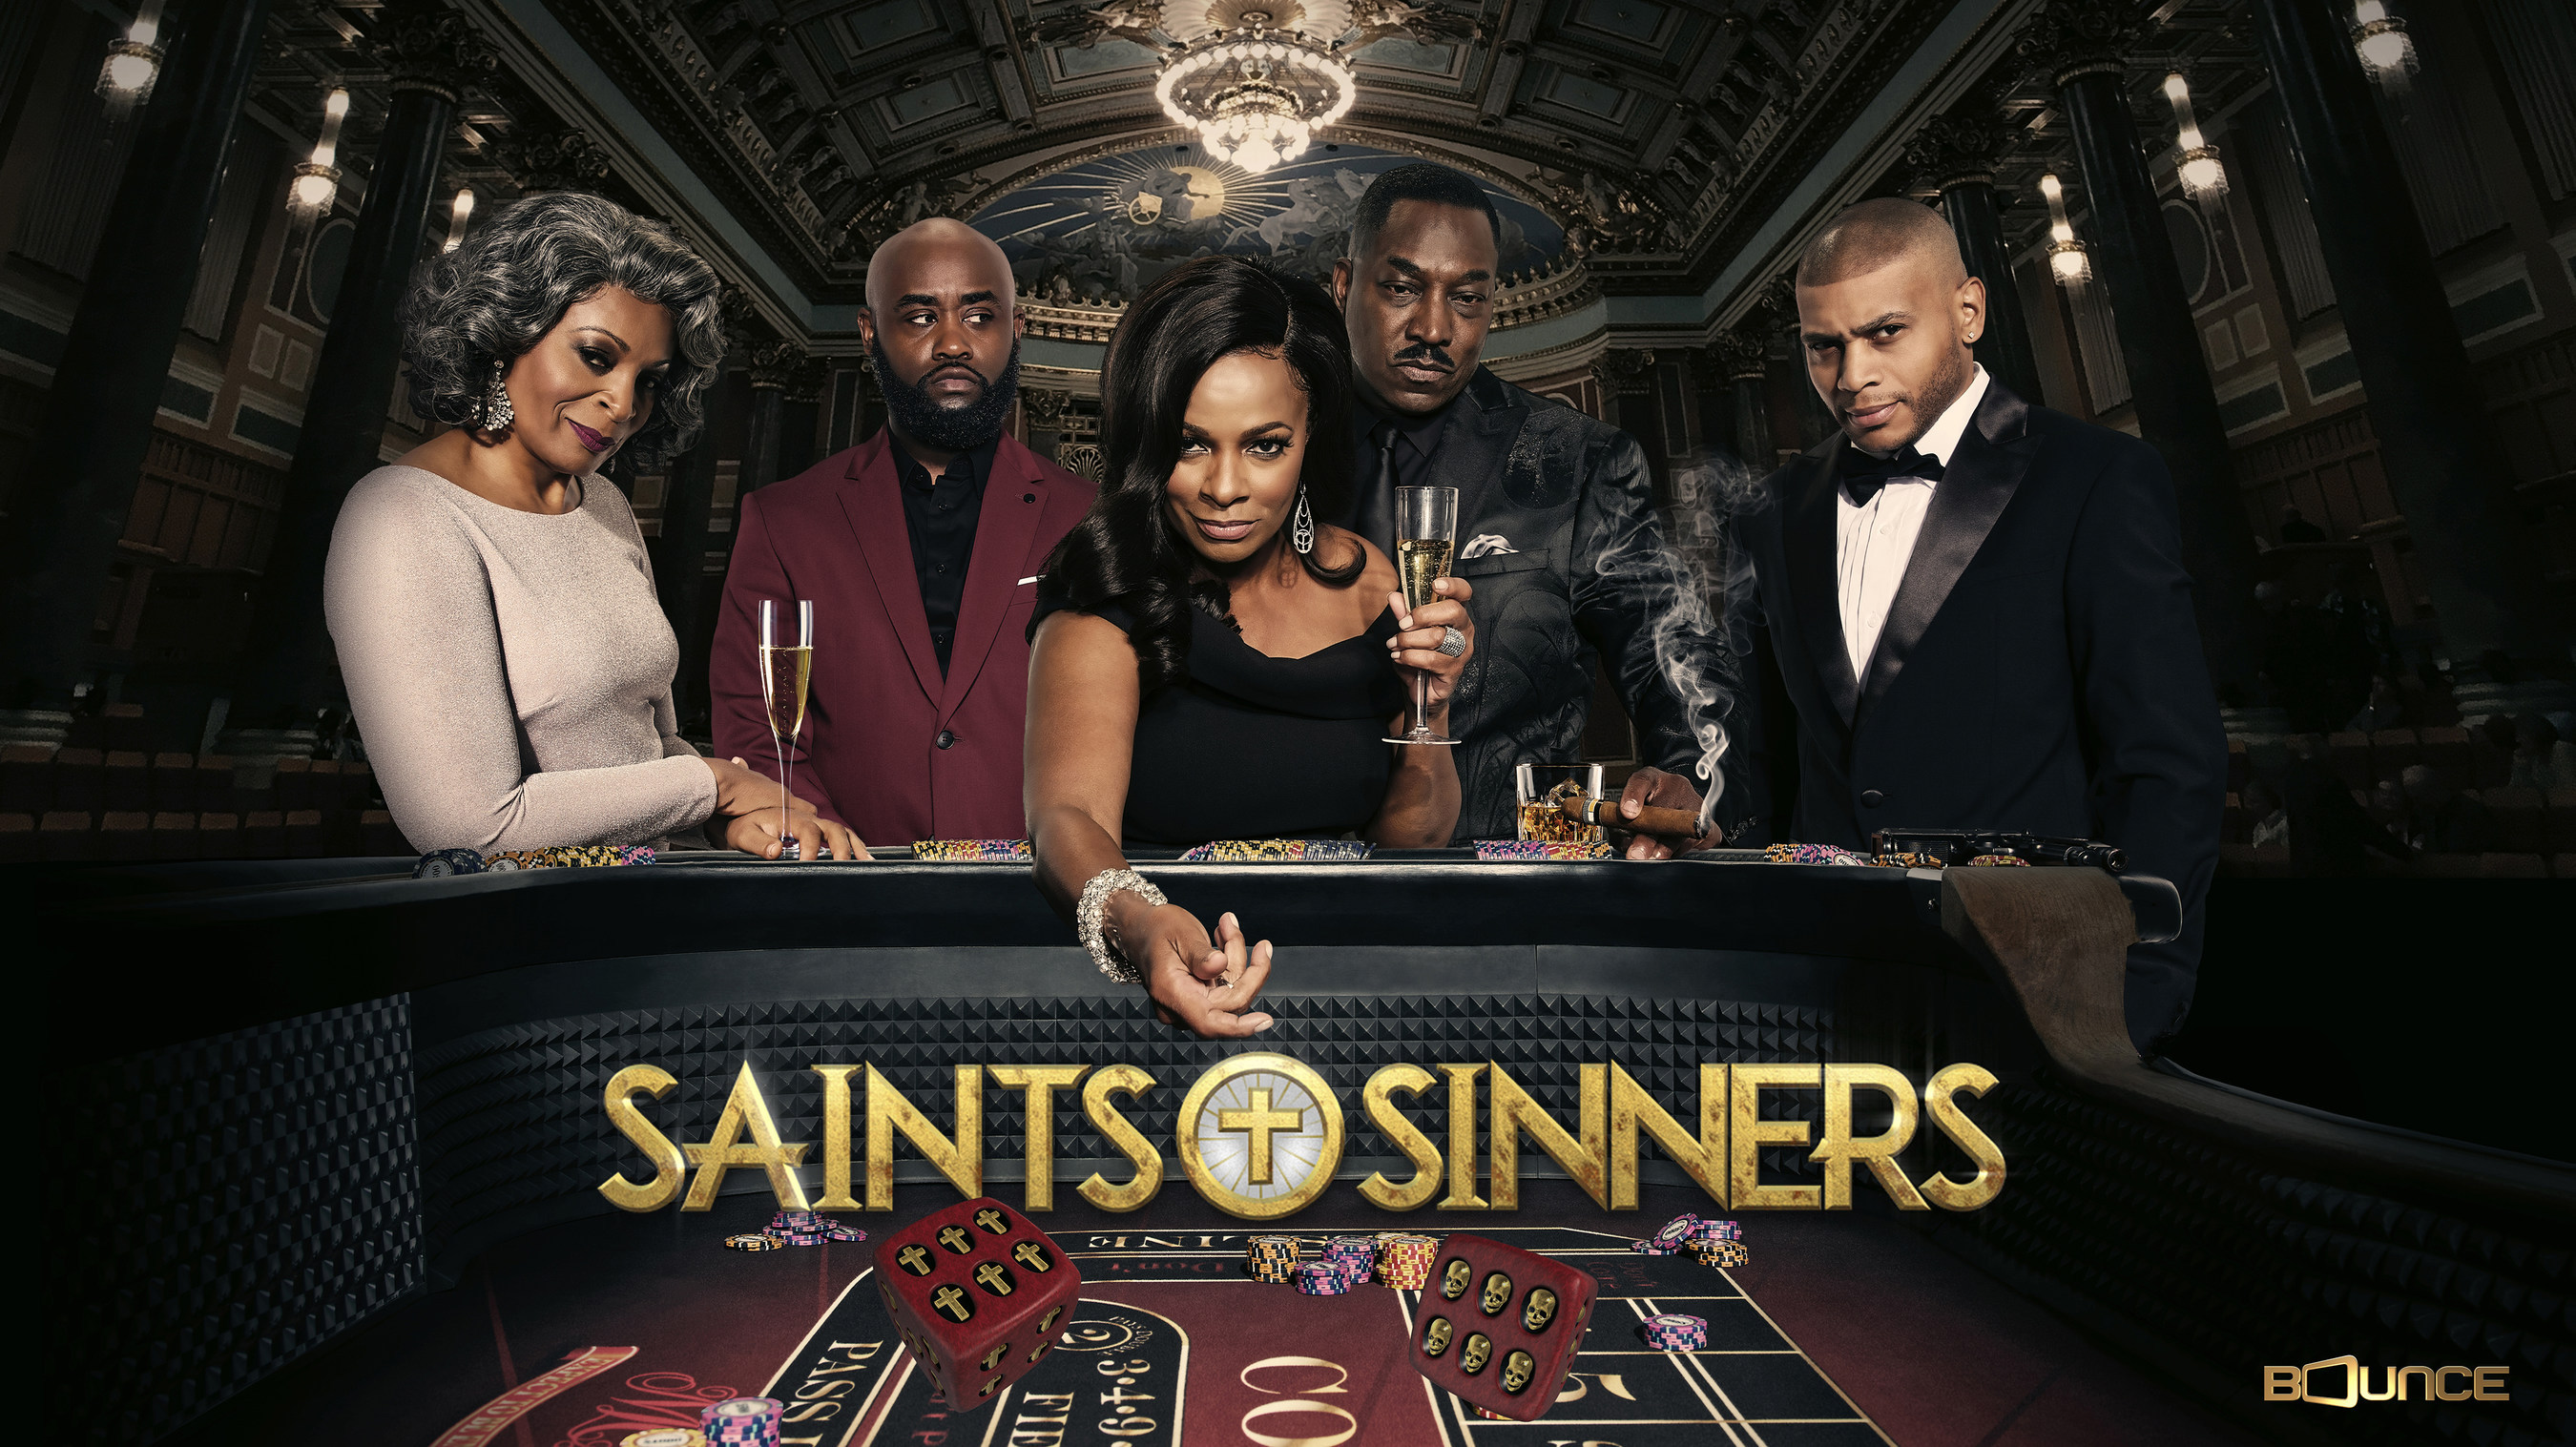 Saints & Sinners Season Four Premiere Finishes #1 on Television